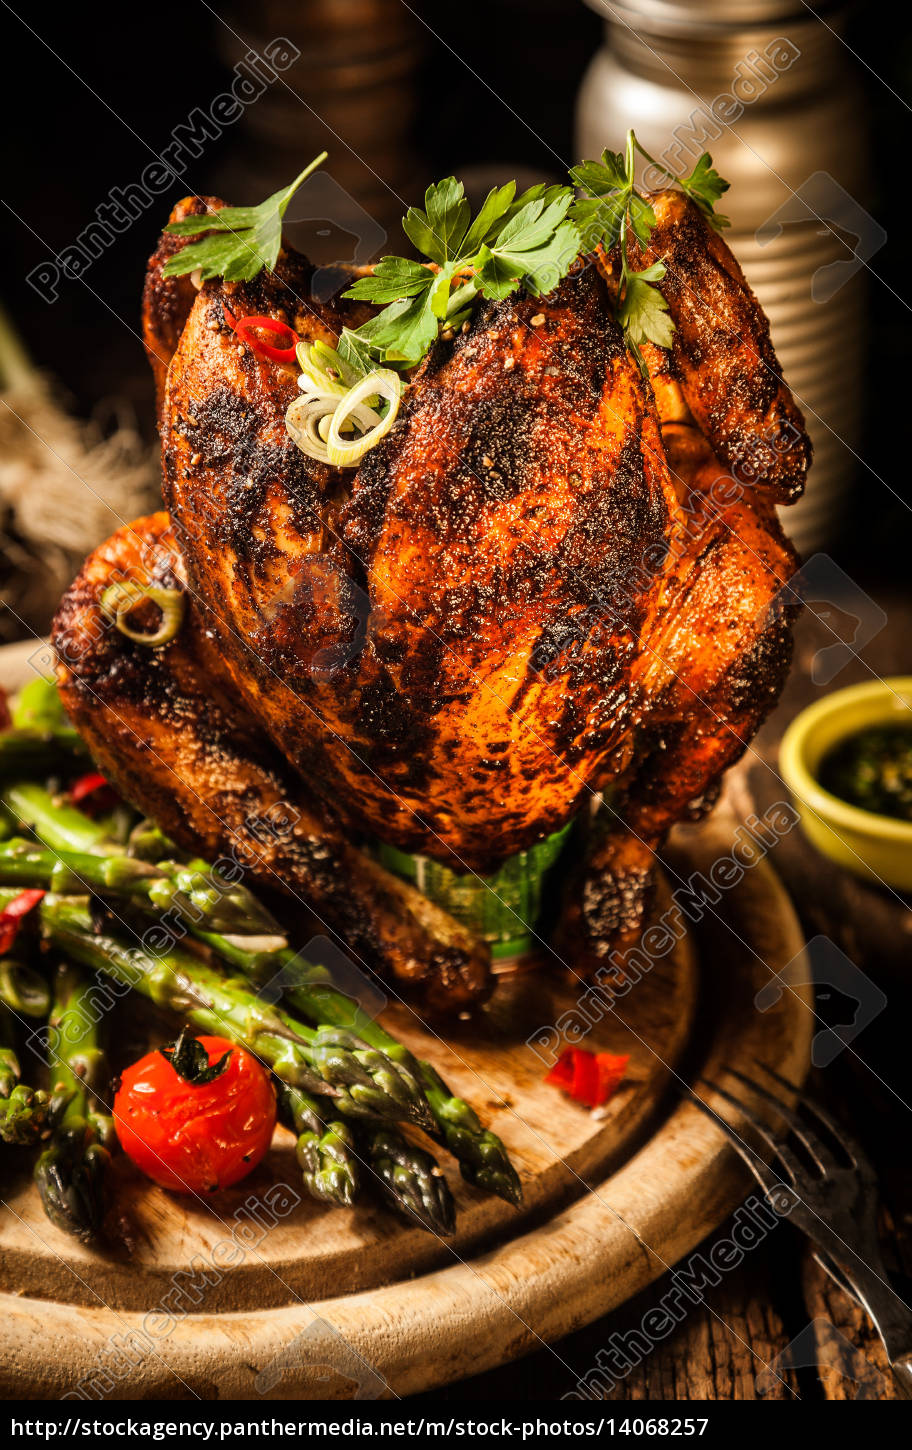 gourmet, tasty, grilled, beer, can, chicken - 14068257